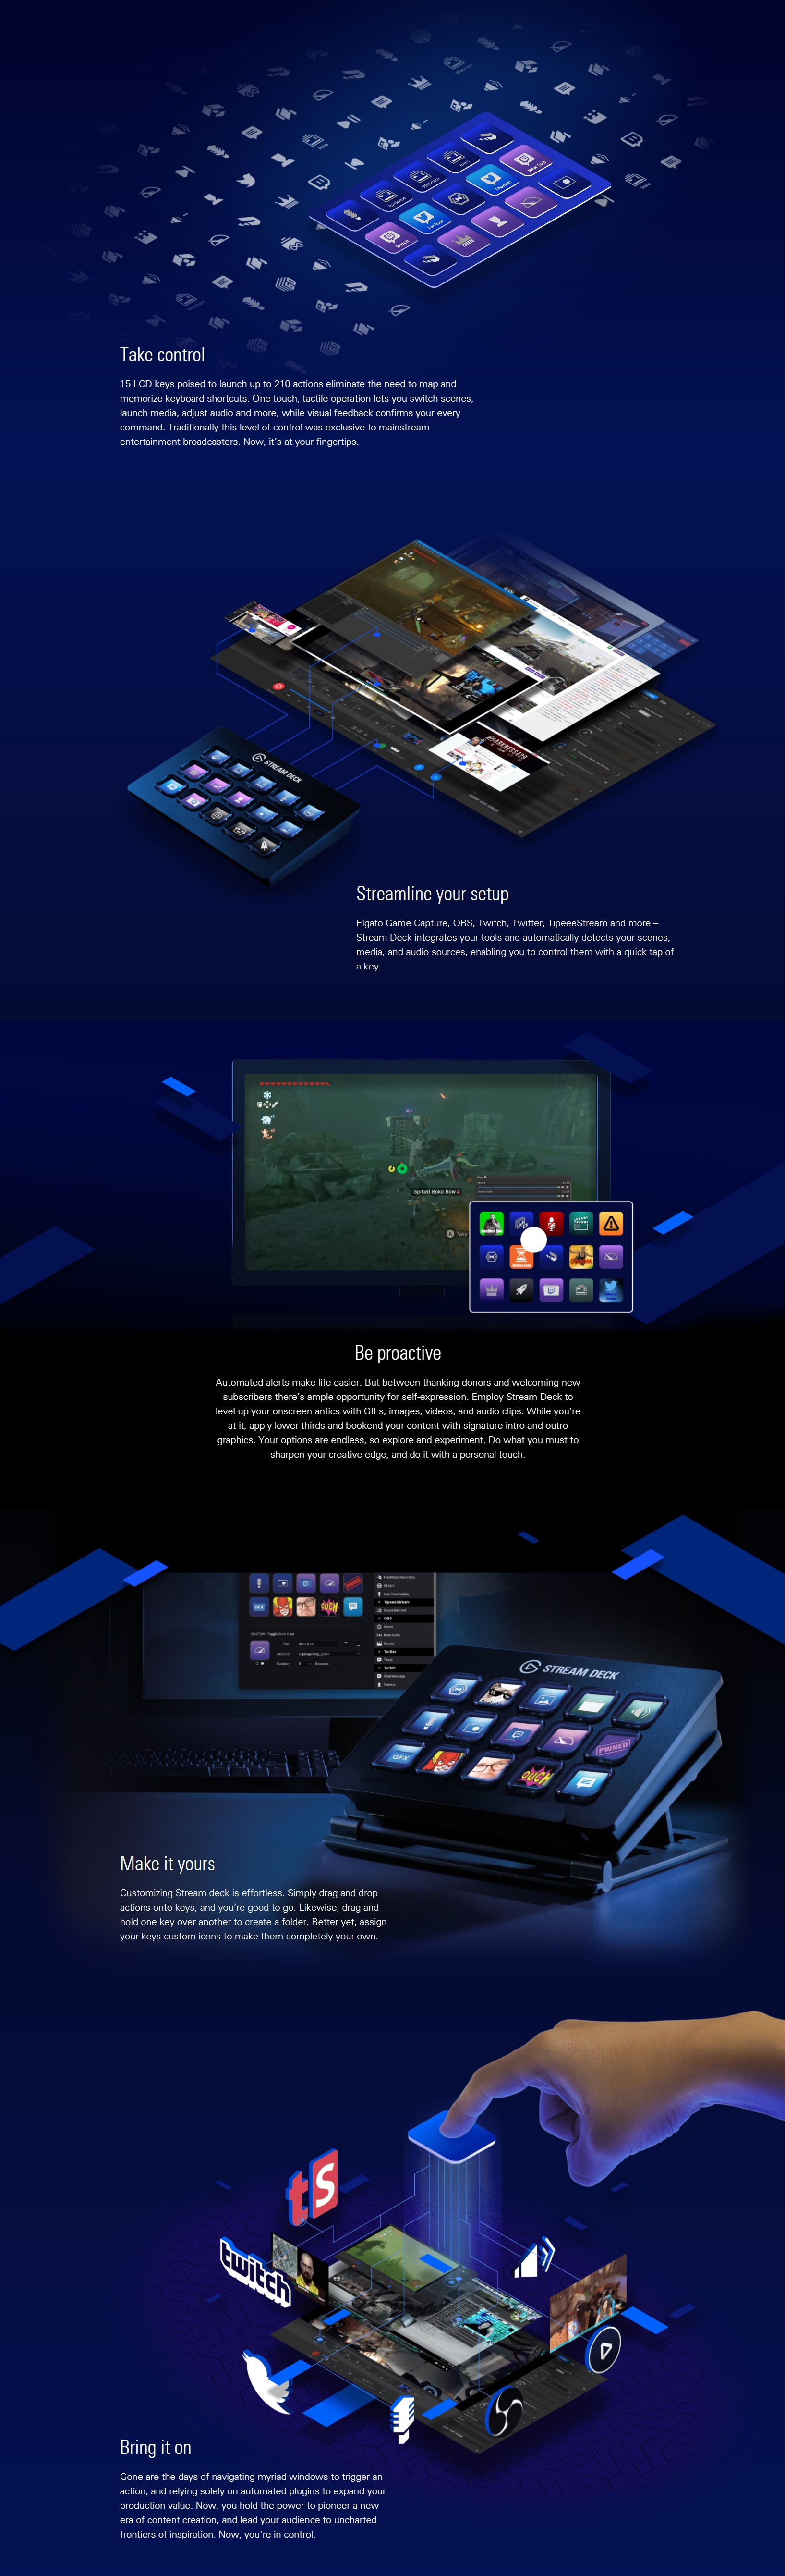 A large marketing image providing additional information about the product Elgato Stream Deck - Additional alt info not provided